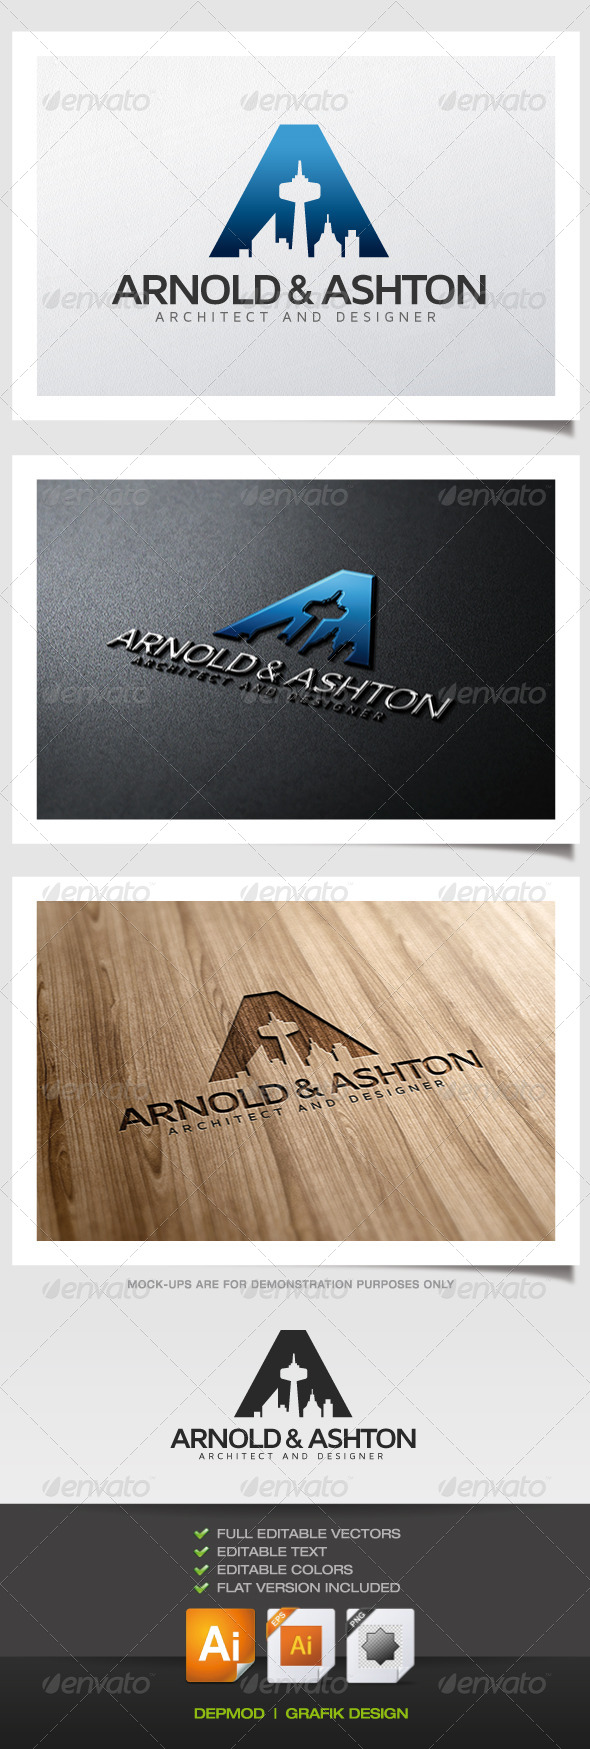 GraphicRiver Arnold & Ashton Architect Logo 5531537